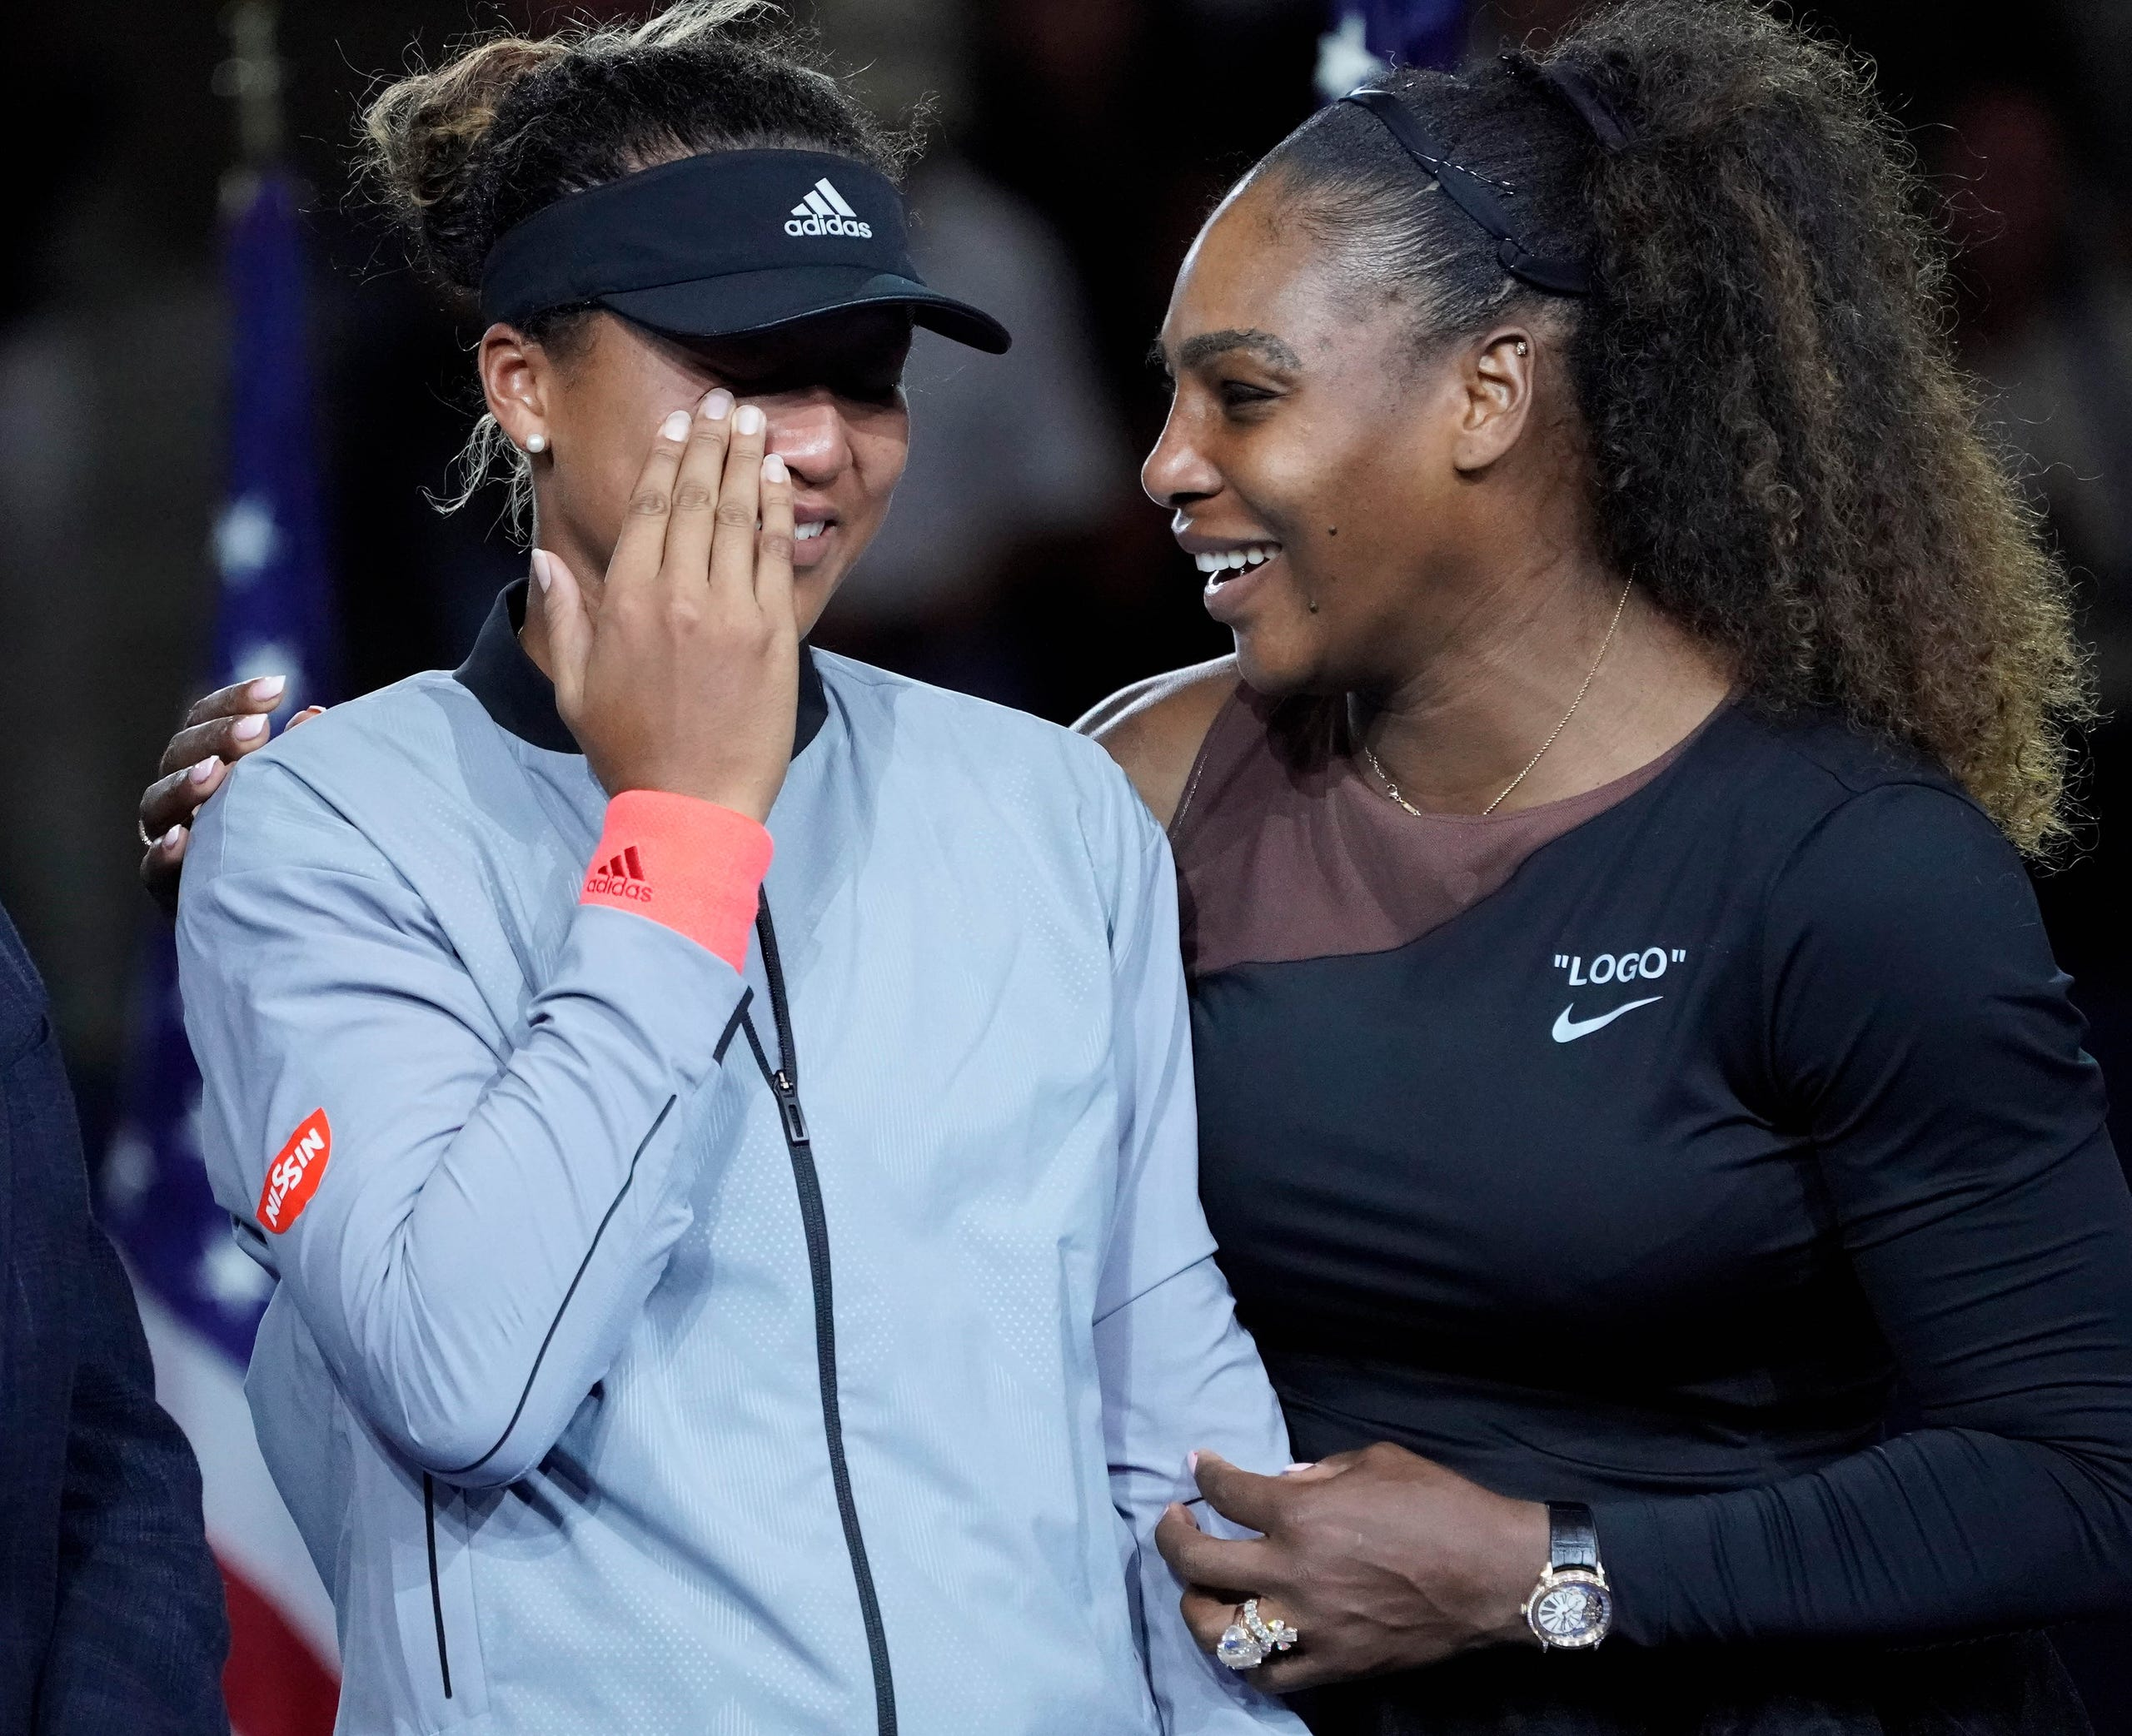 Naomi Osaka of Japan (left) cries as Serena Williams of the USA comforts her after the crowd booed during the trophy ceremony following the womenÕs final on day thirteen of the 2018 U.S. Open tennis tournament at USTA Billie Jean King National Tennis Center on Sept. 8, 2018.